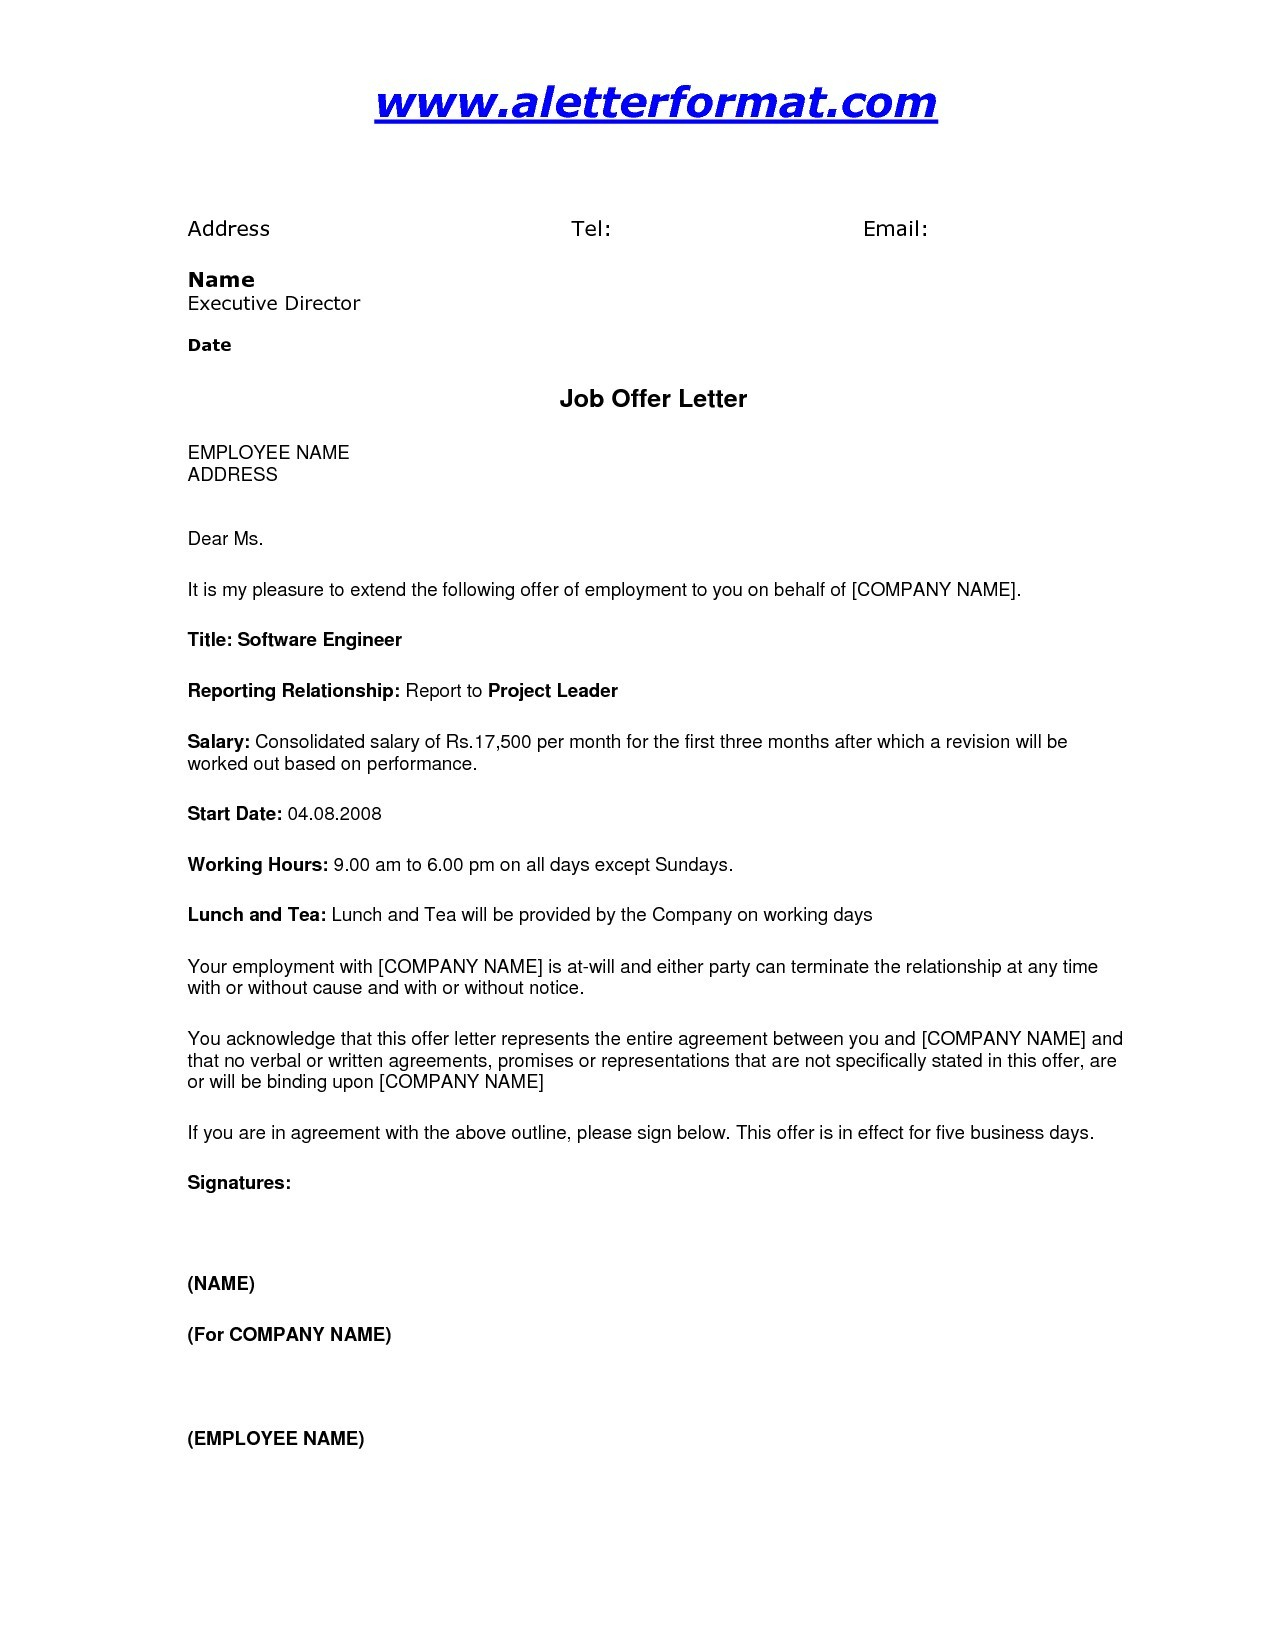 Conditional Offer Of Employment Letter Template - Job Fer How Long to Accept Archives Biz Apps Co Best Job Fer